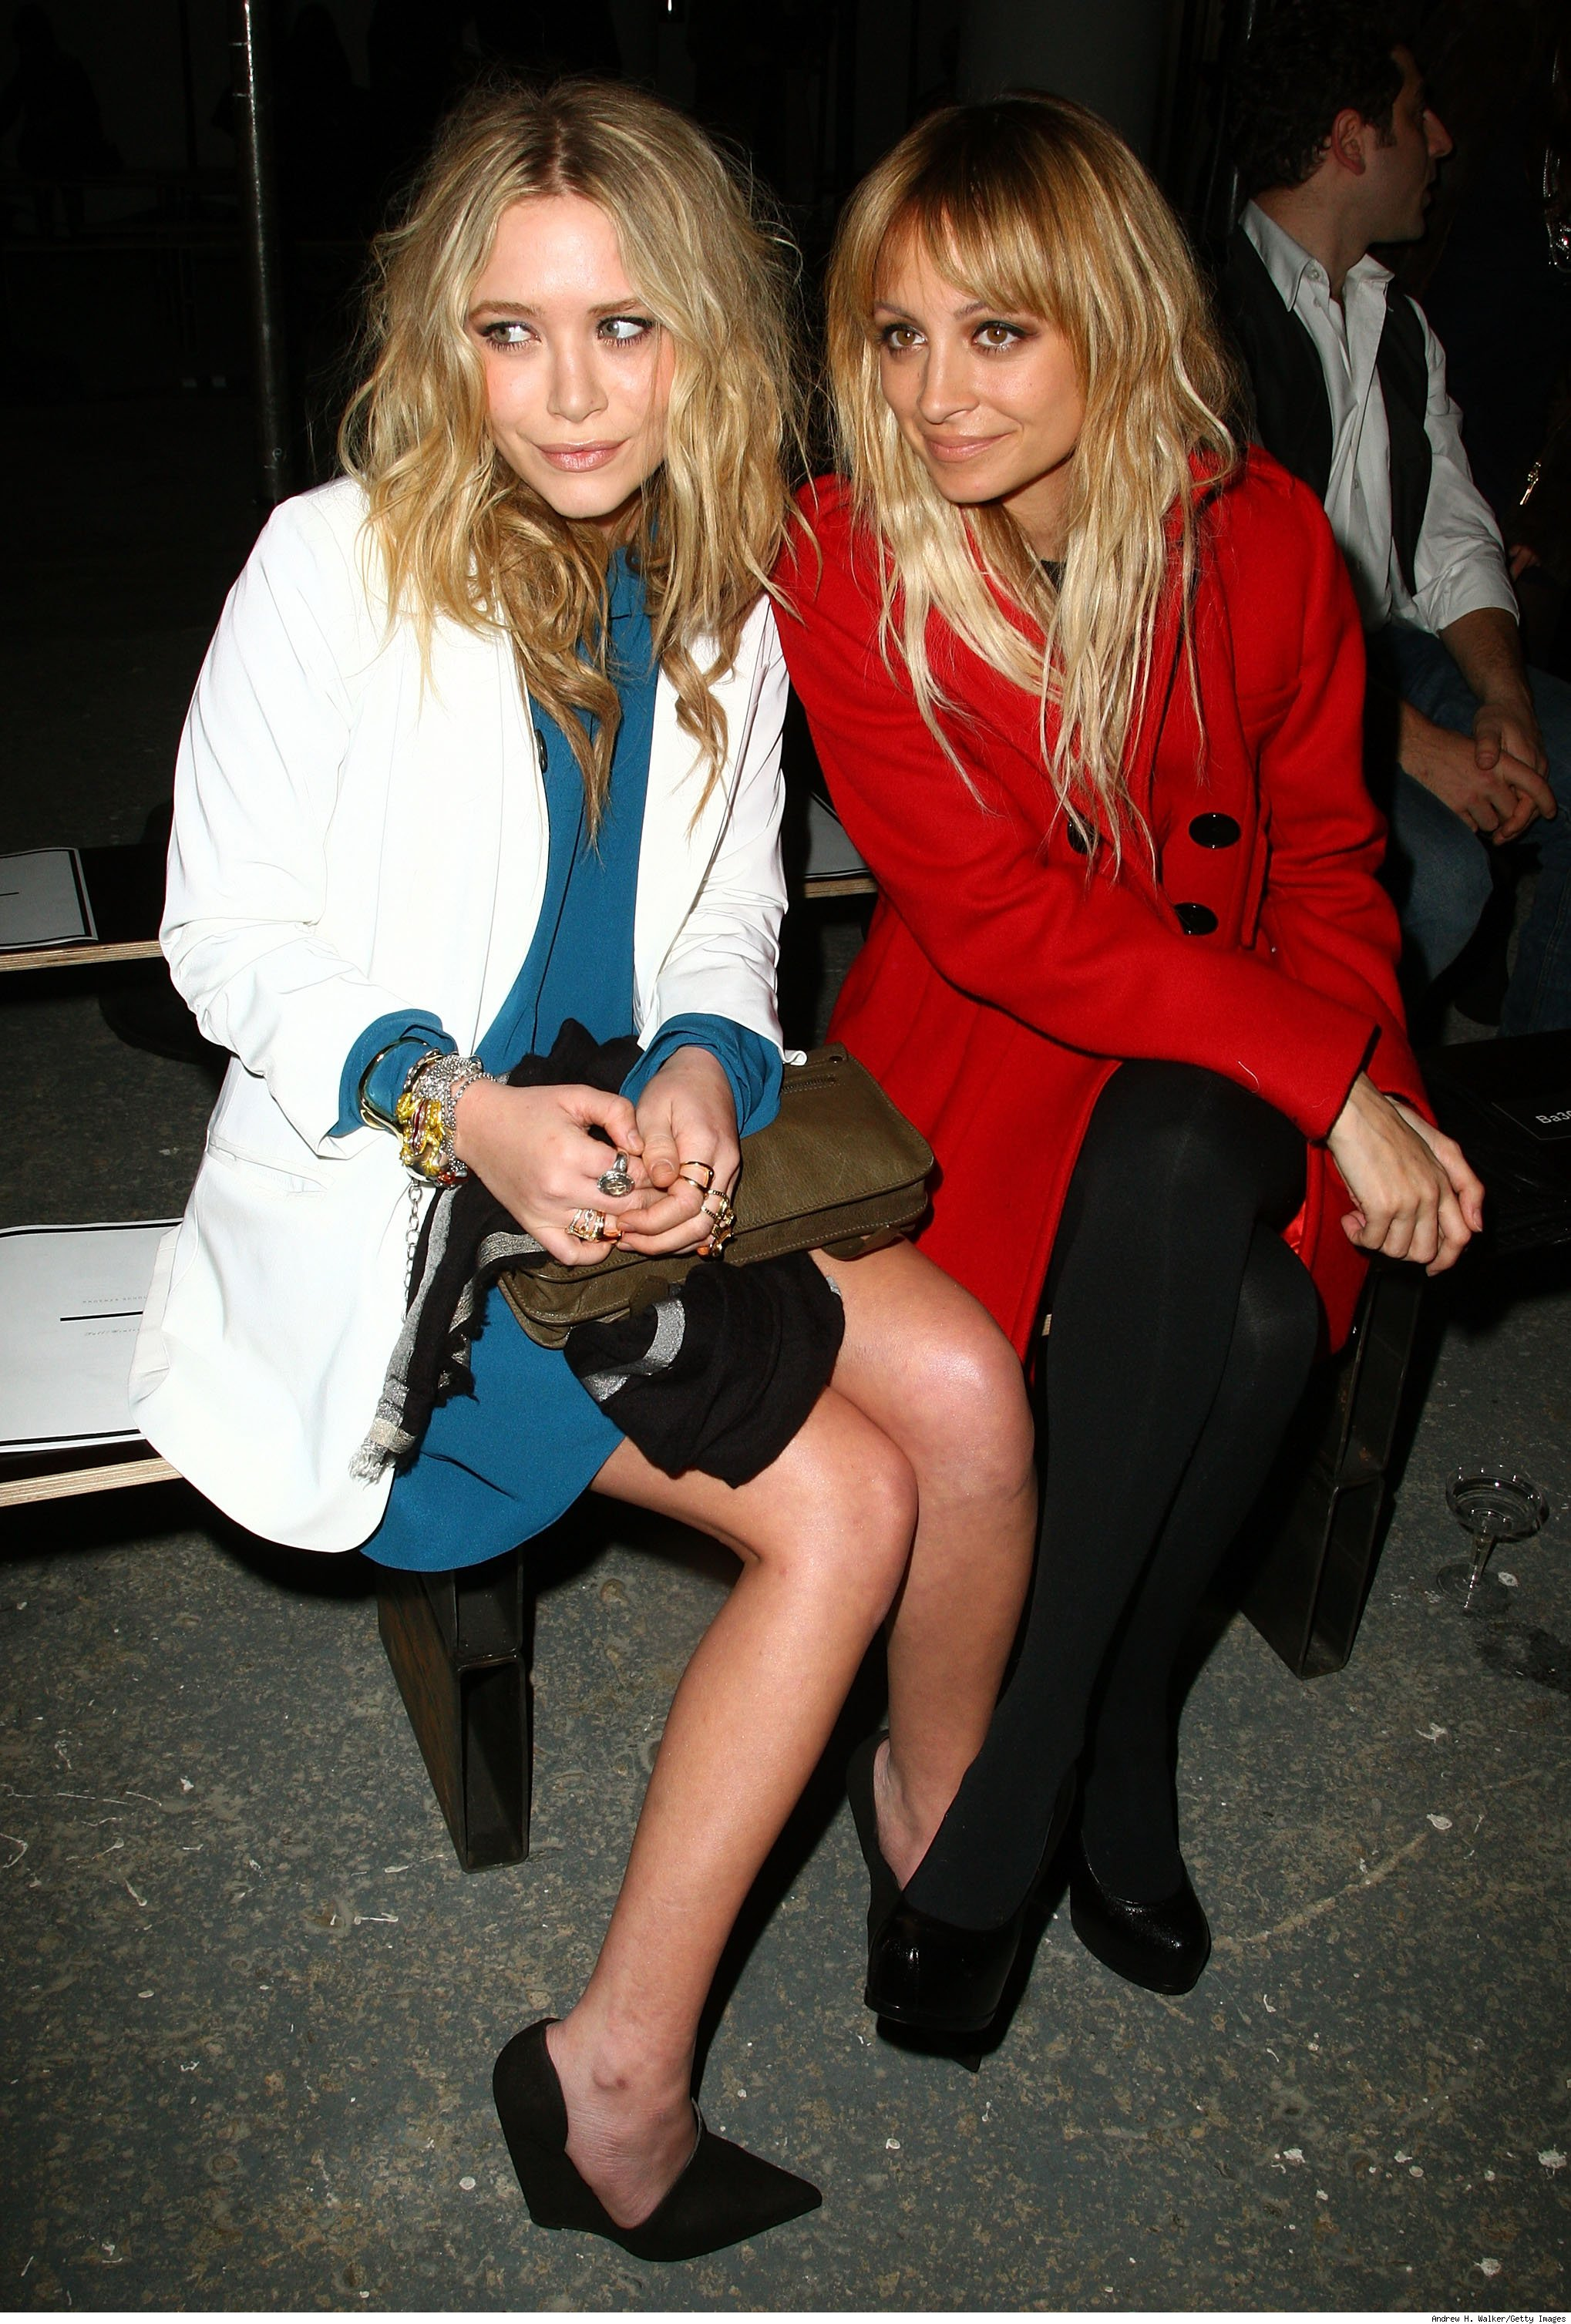 Mary Kate Olsen and Nicole Richie